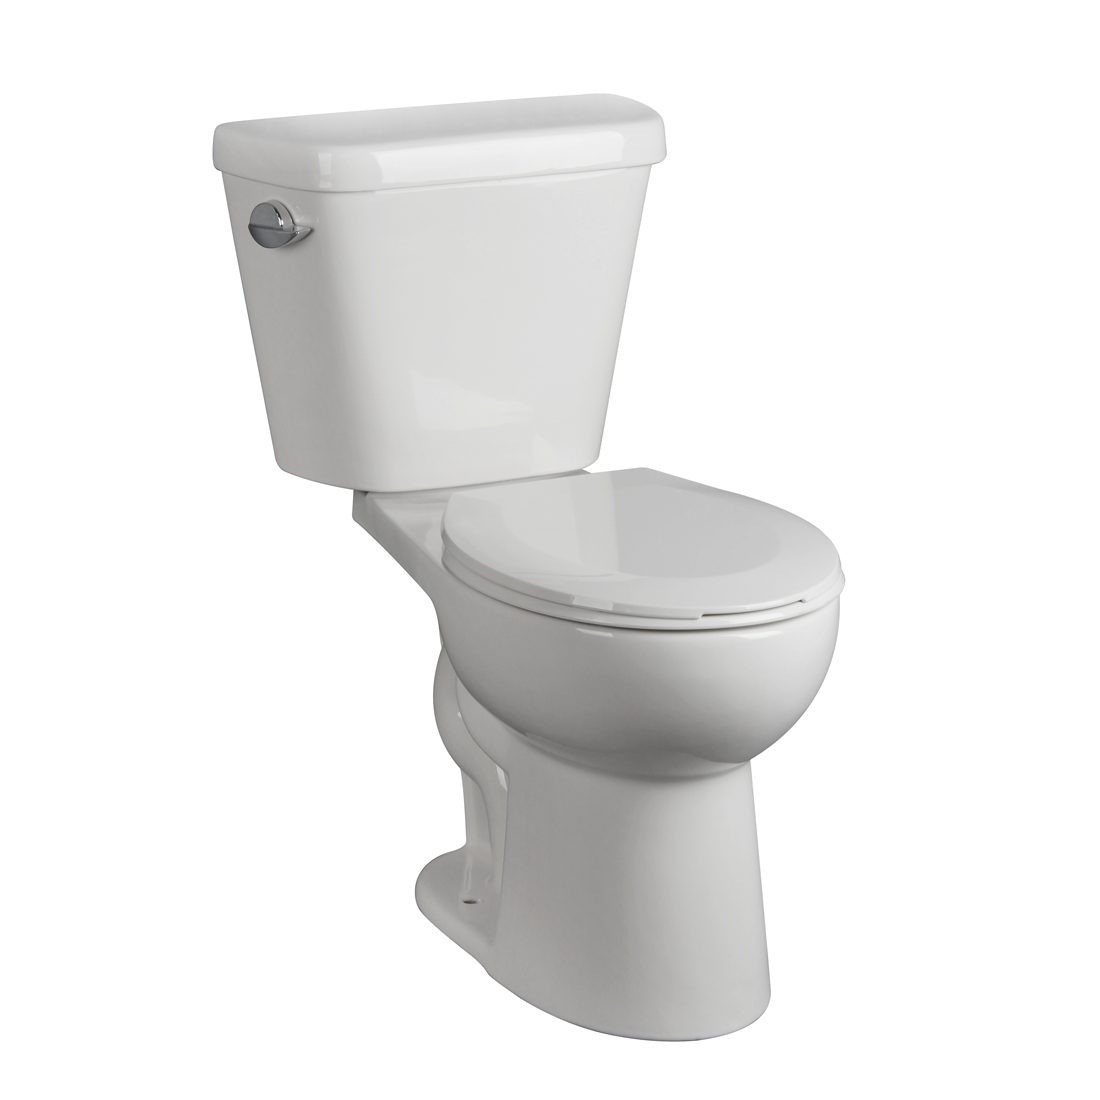 Portland Toilet 16.5inch 3.8L White Front View